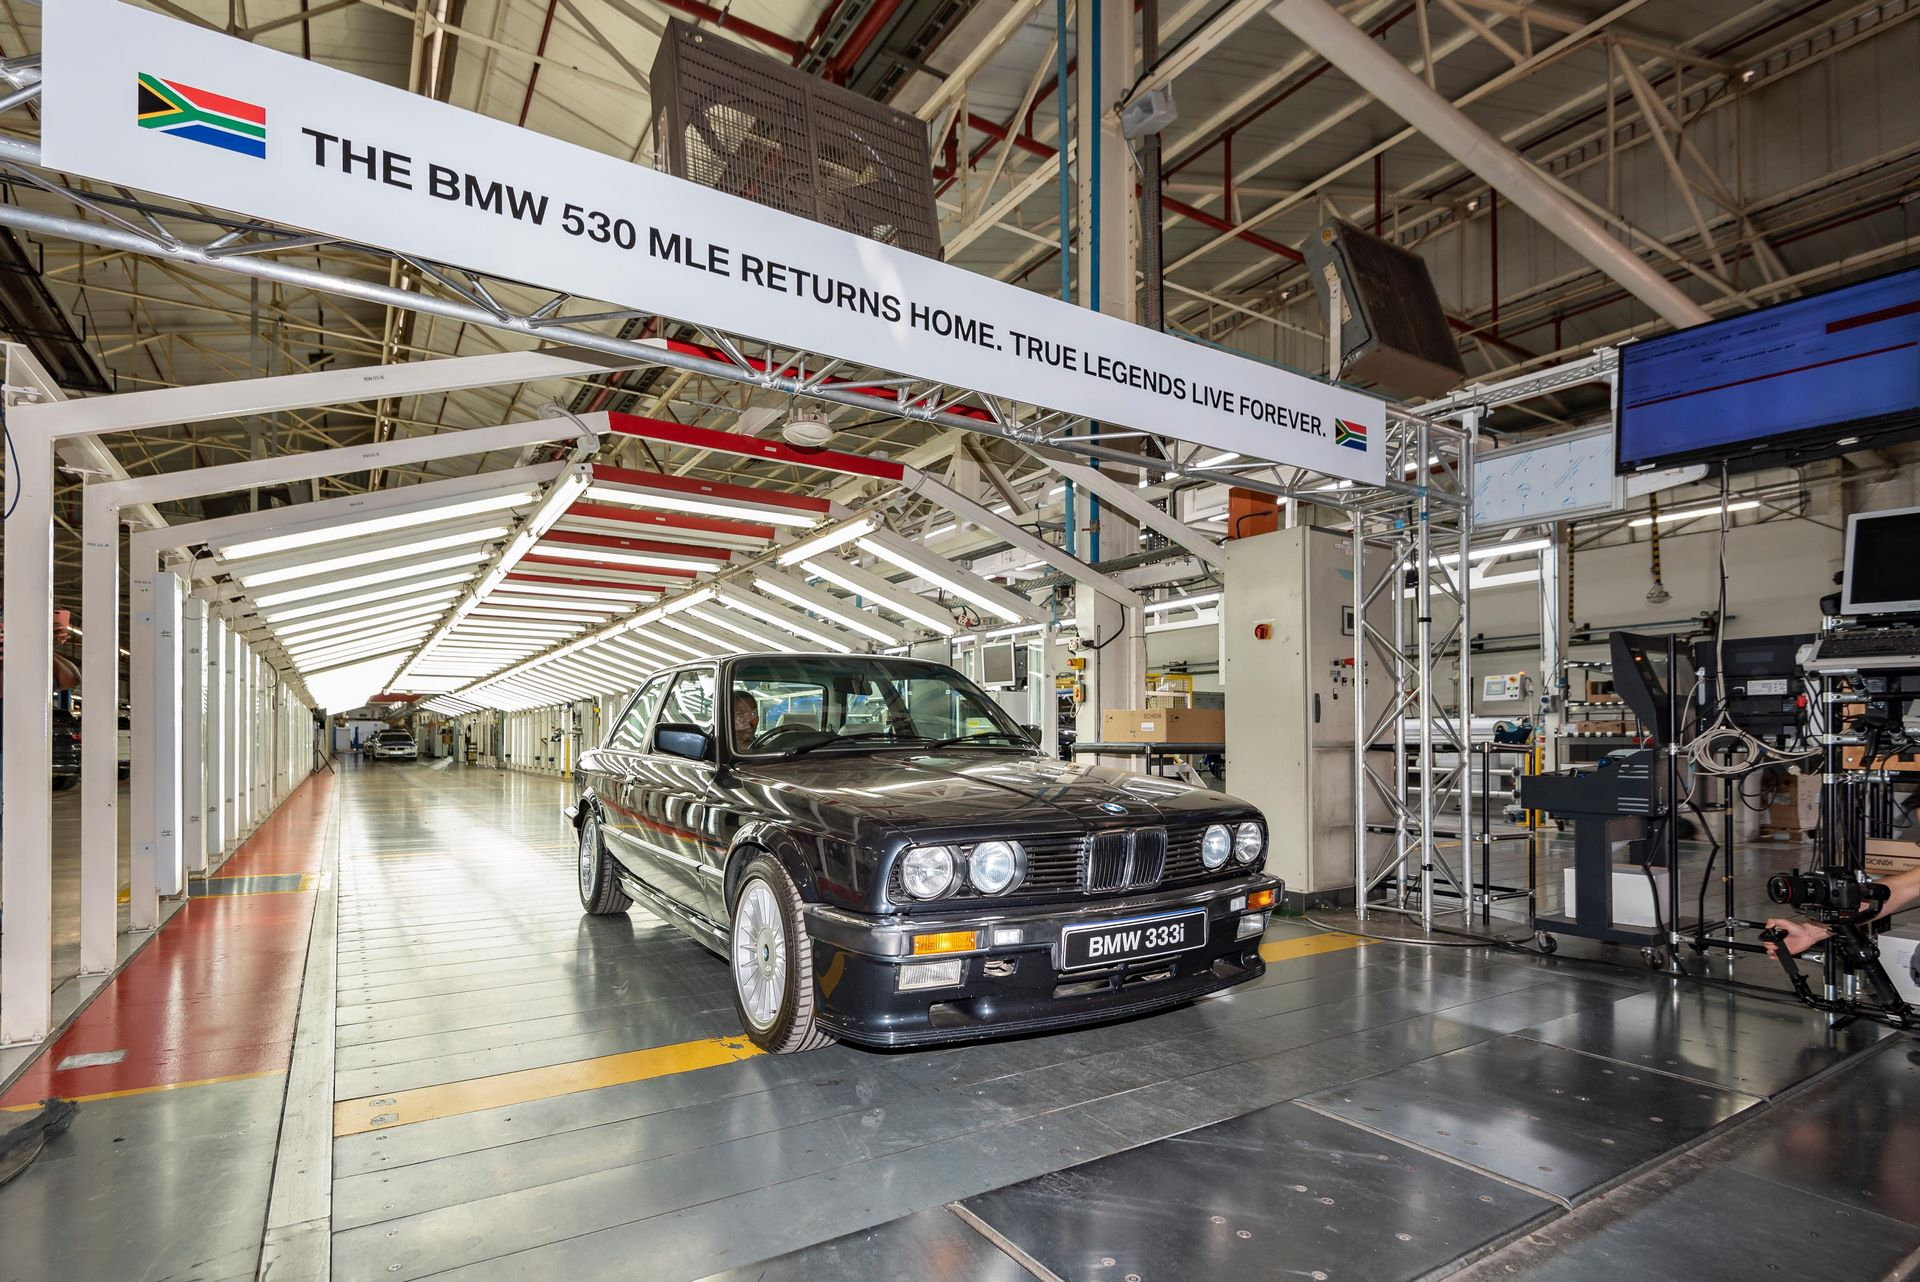 BMW-530-MLE-restoration-in-South-Africa-70